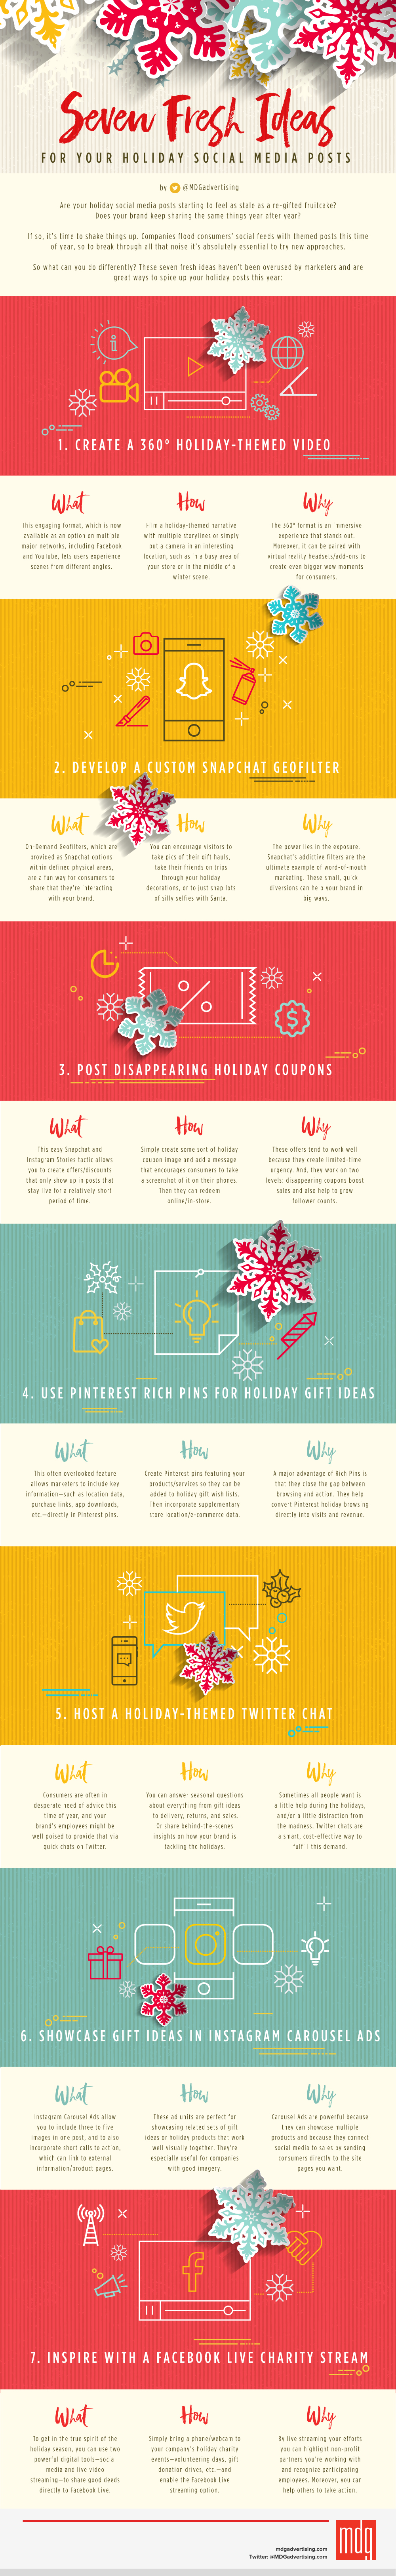 Seven Fresh Ideas For Your Holiday Social Media Posts